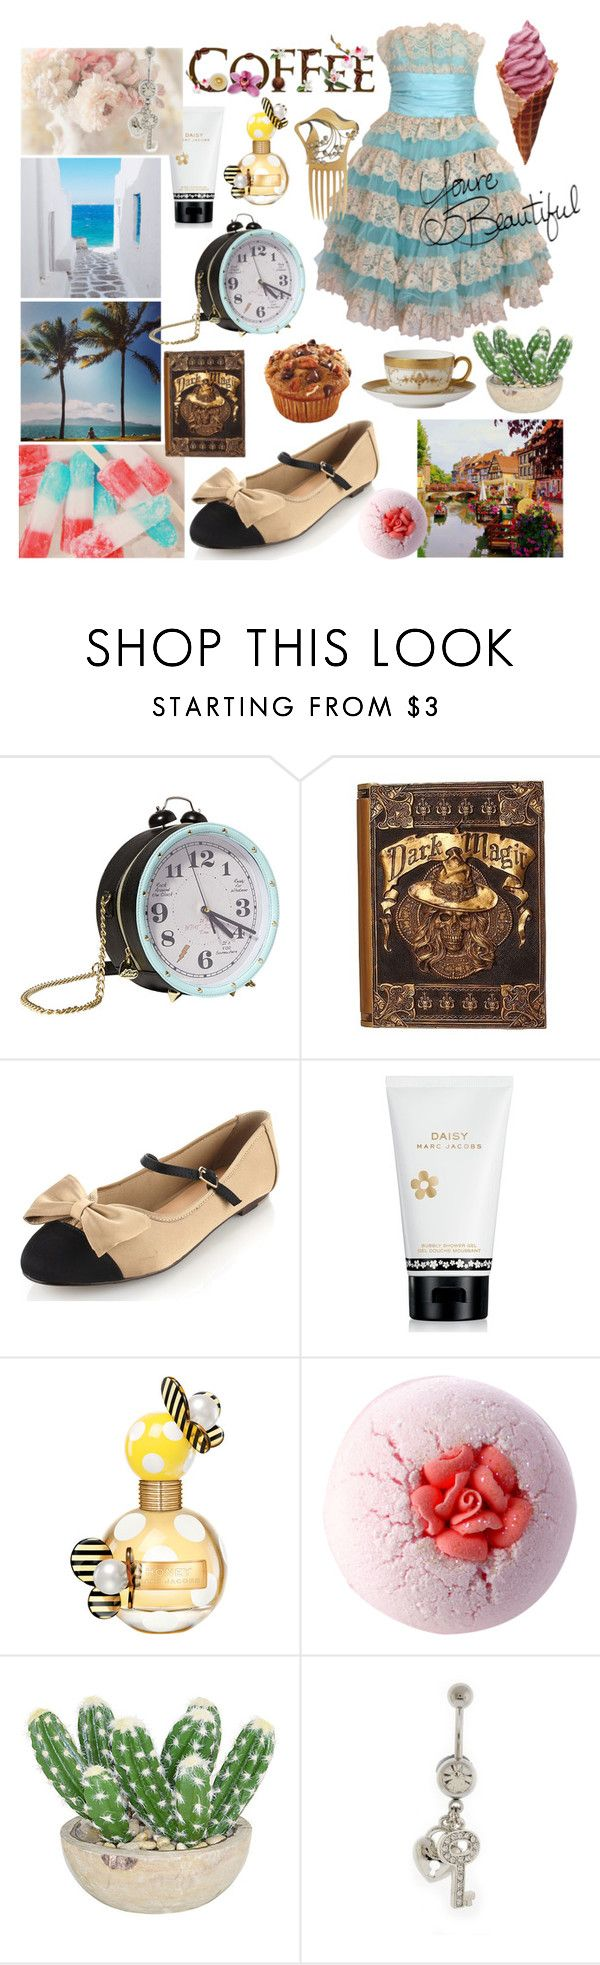 """""""Destination"""" by tery ❤ liked on Polyvore featuring Betsey Johnson, Marais USA, LIST, Marc Jacobs, Wedgwood & Bentley and The French Bee"""